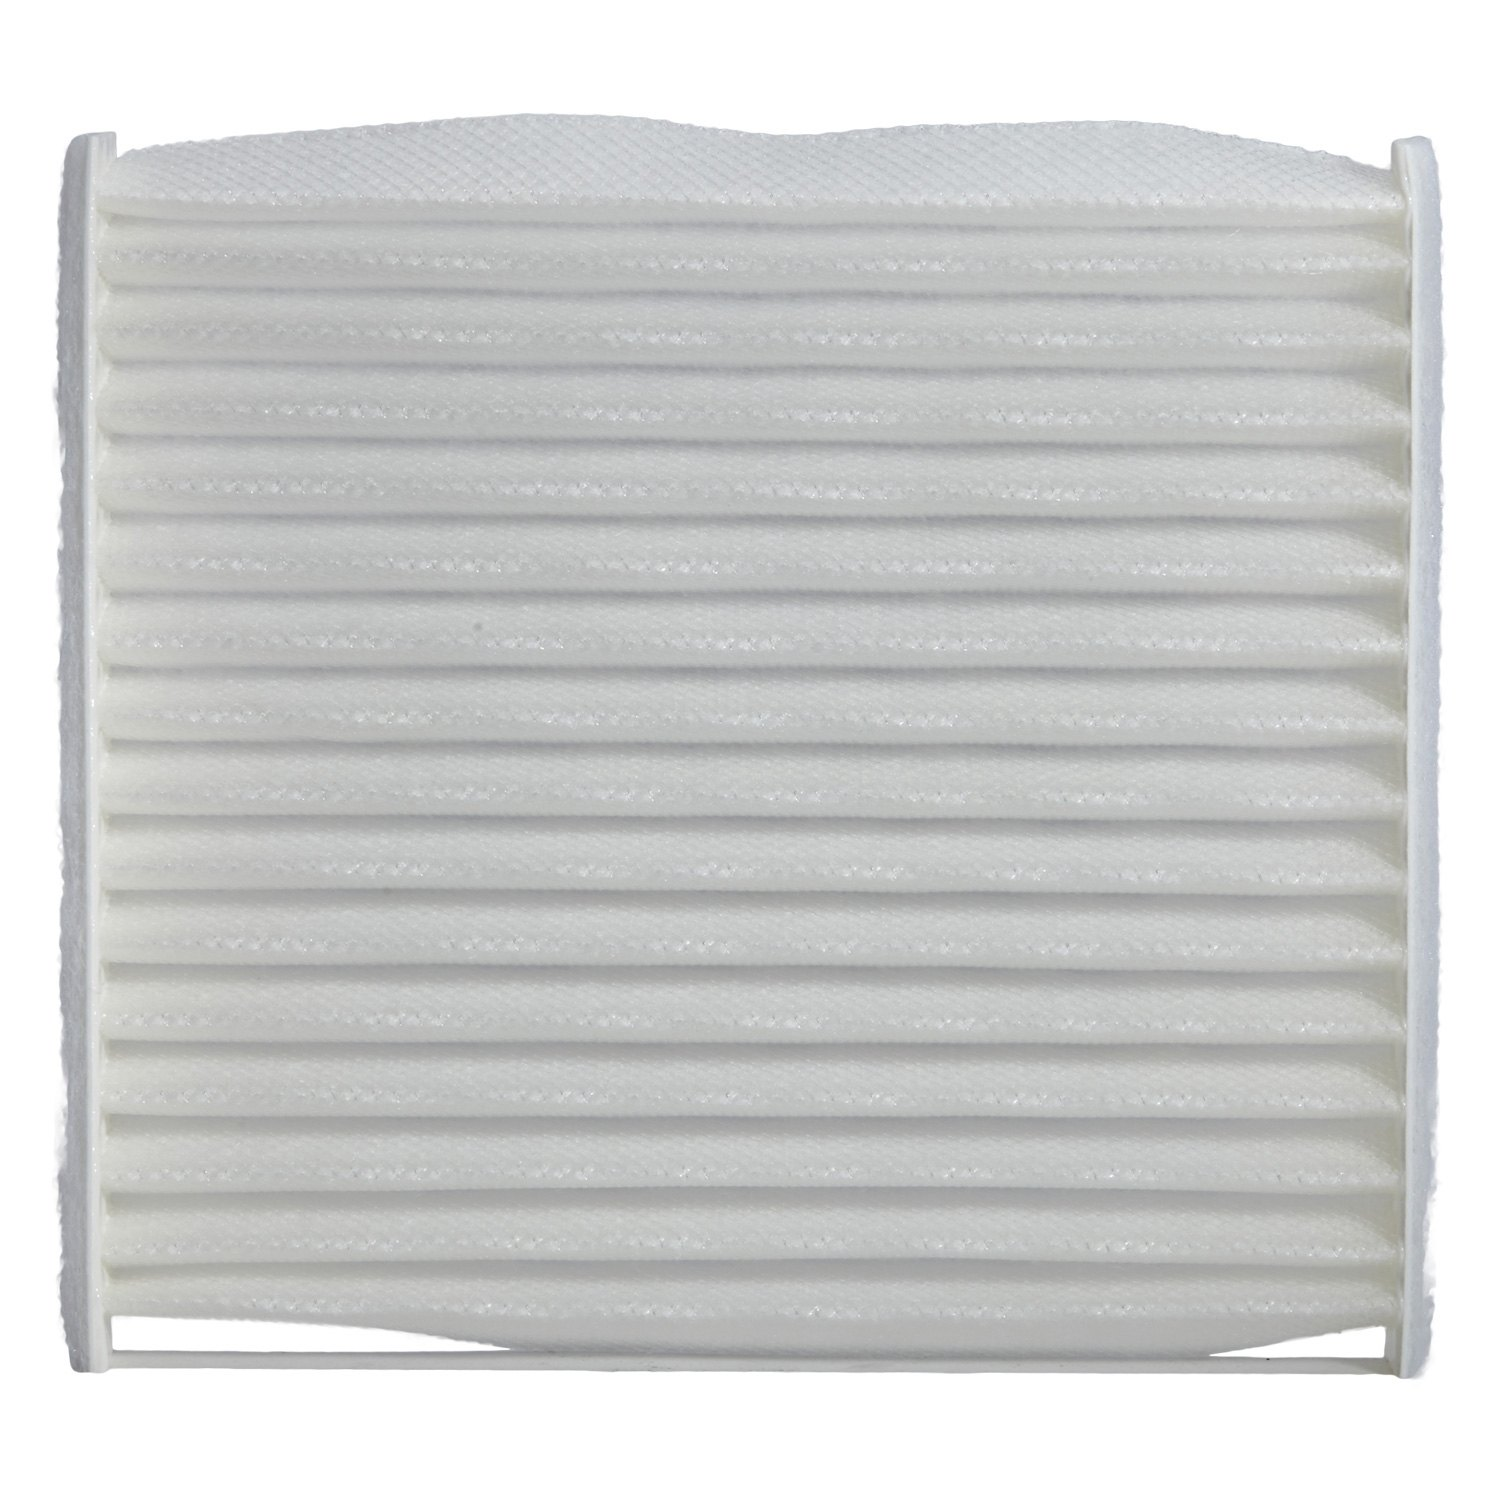 800025p-2 Amazing toyota Camry 2006 Cabin Air Filter Cars Trend